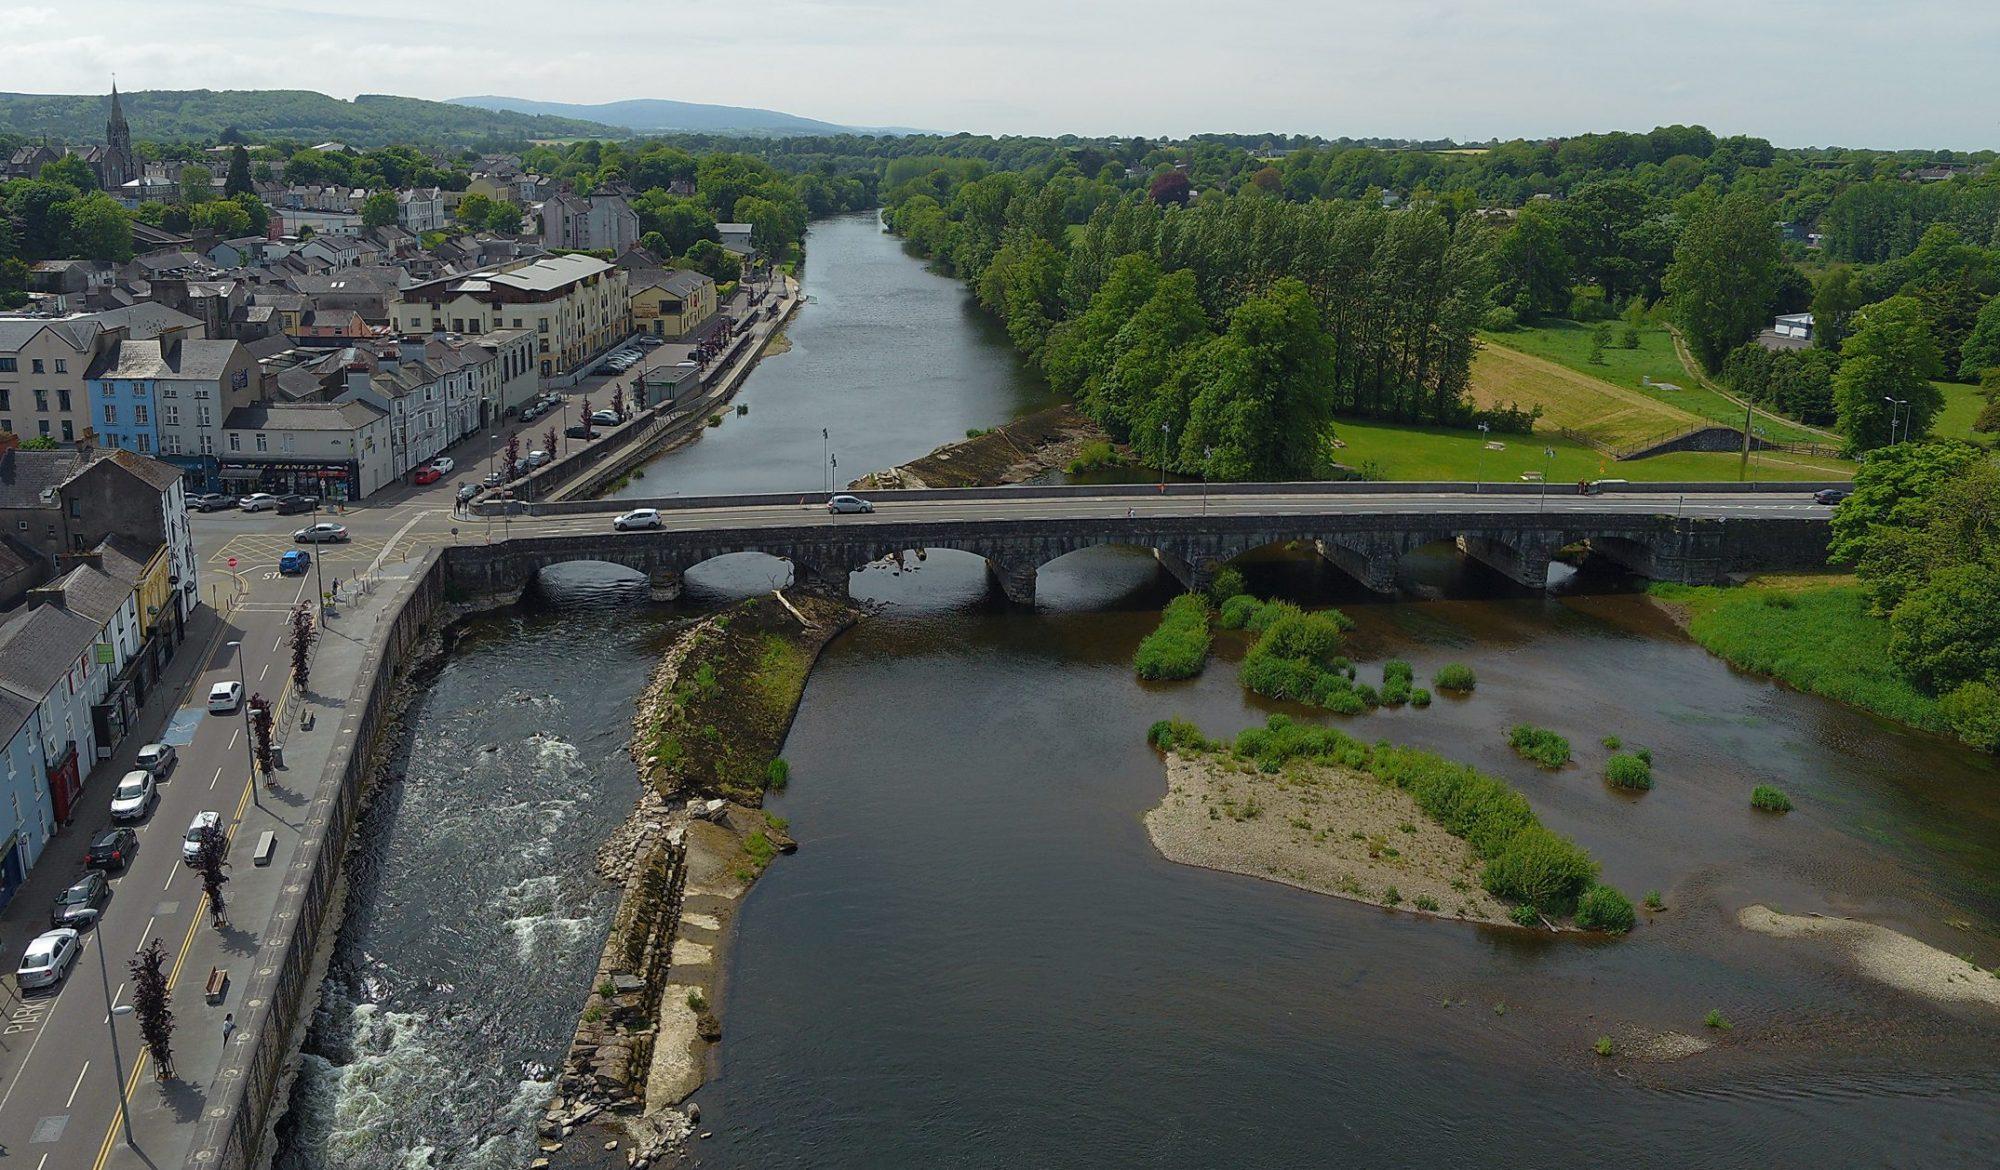 Fermoy Weir and Fish Bypass Channel